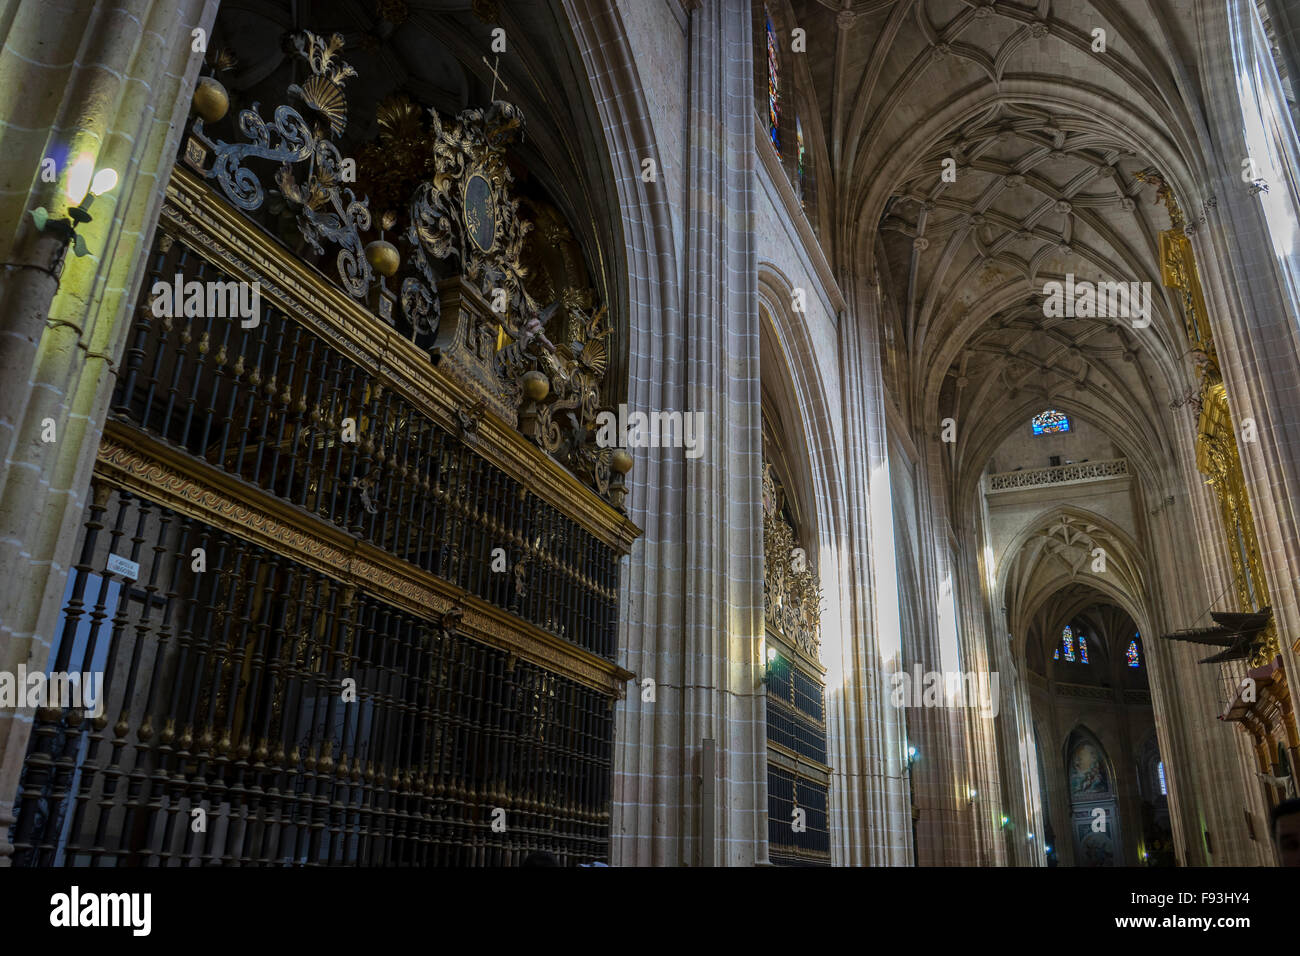 Christianity Interior Gothic Cathedral Of Segovia Columns And Arches With Large Windows